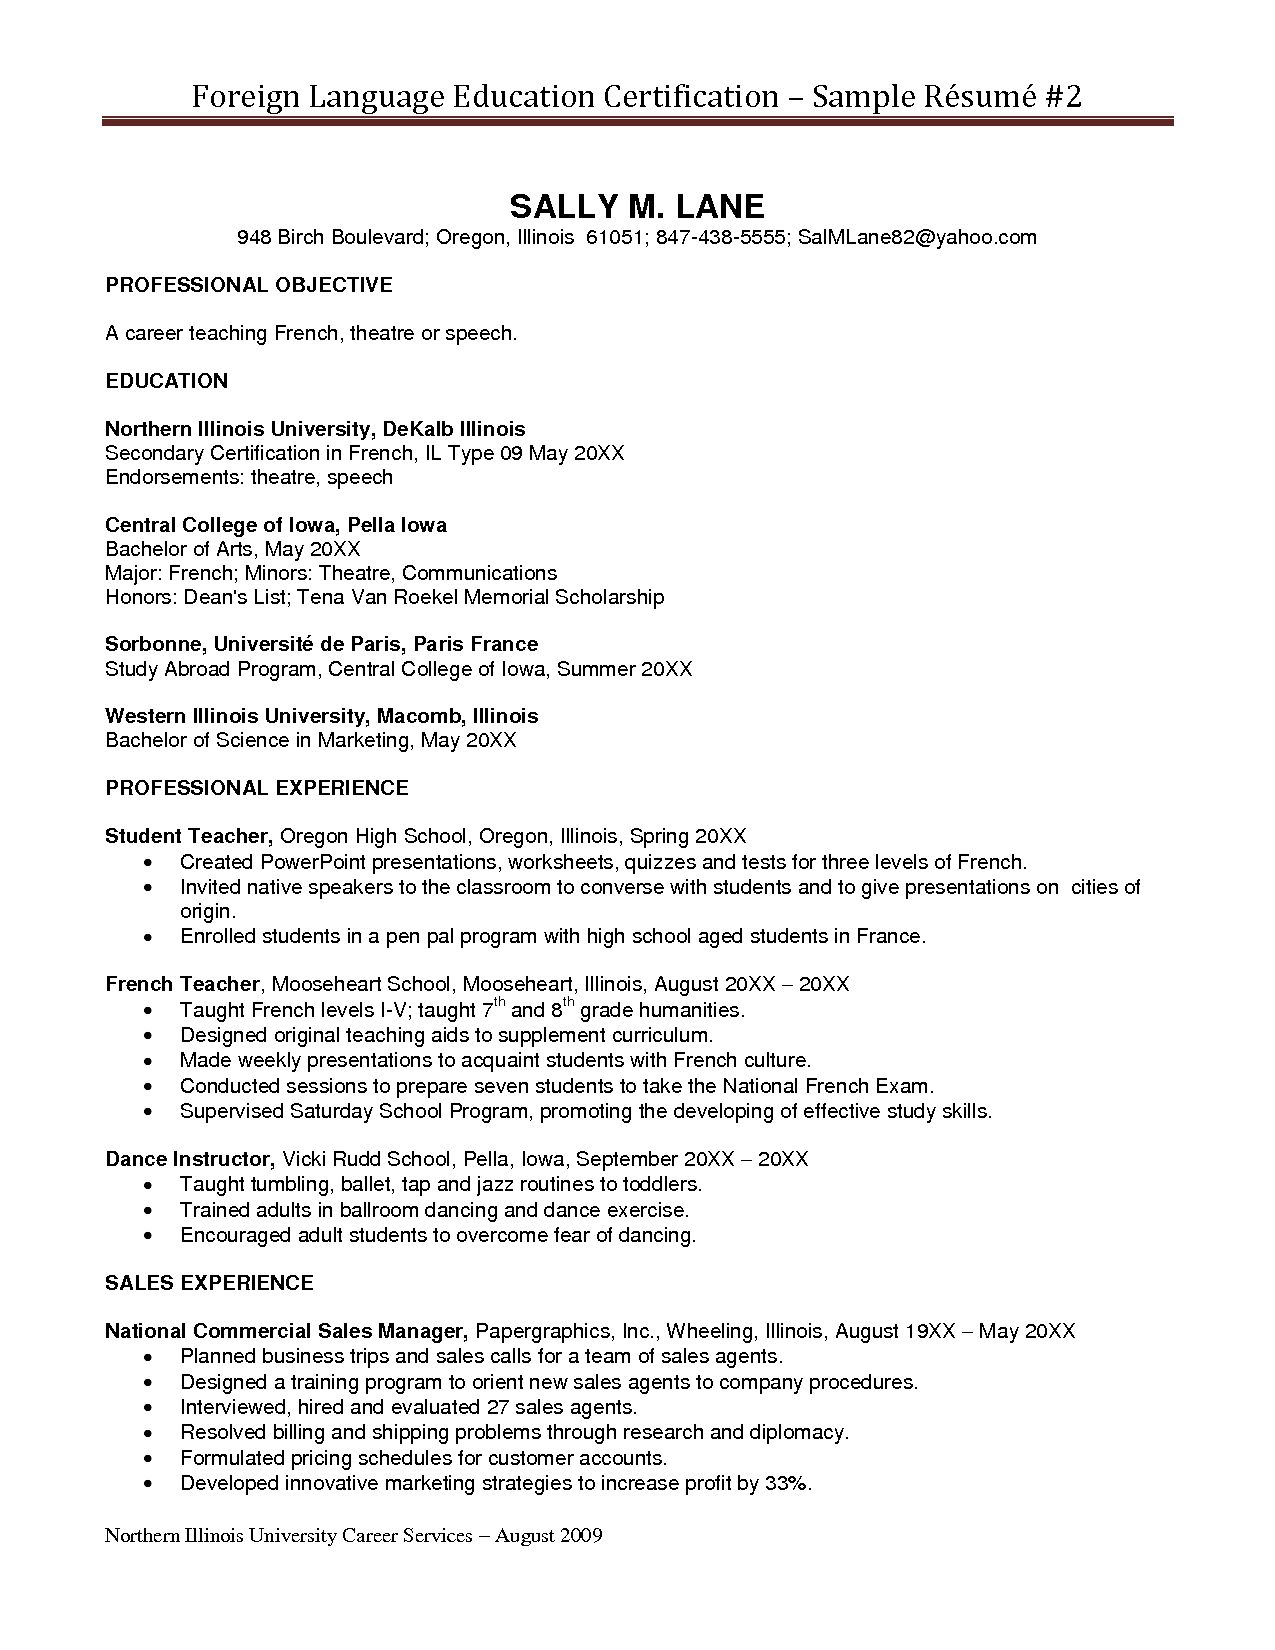 certifications on a resume certification on resume example 0a11e7fb8 - A Resume Sample